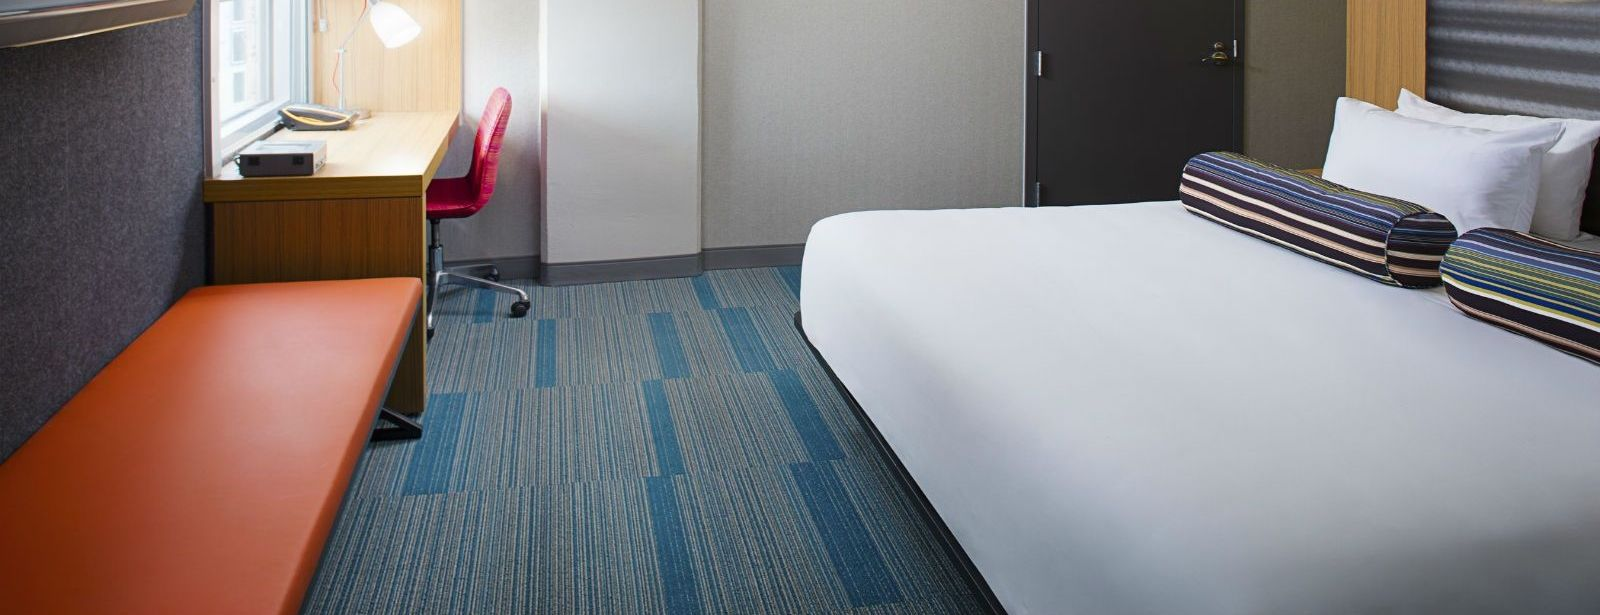 Charlotte Accommodations - Aloft Room